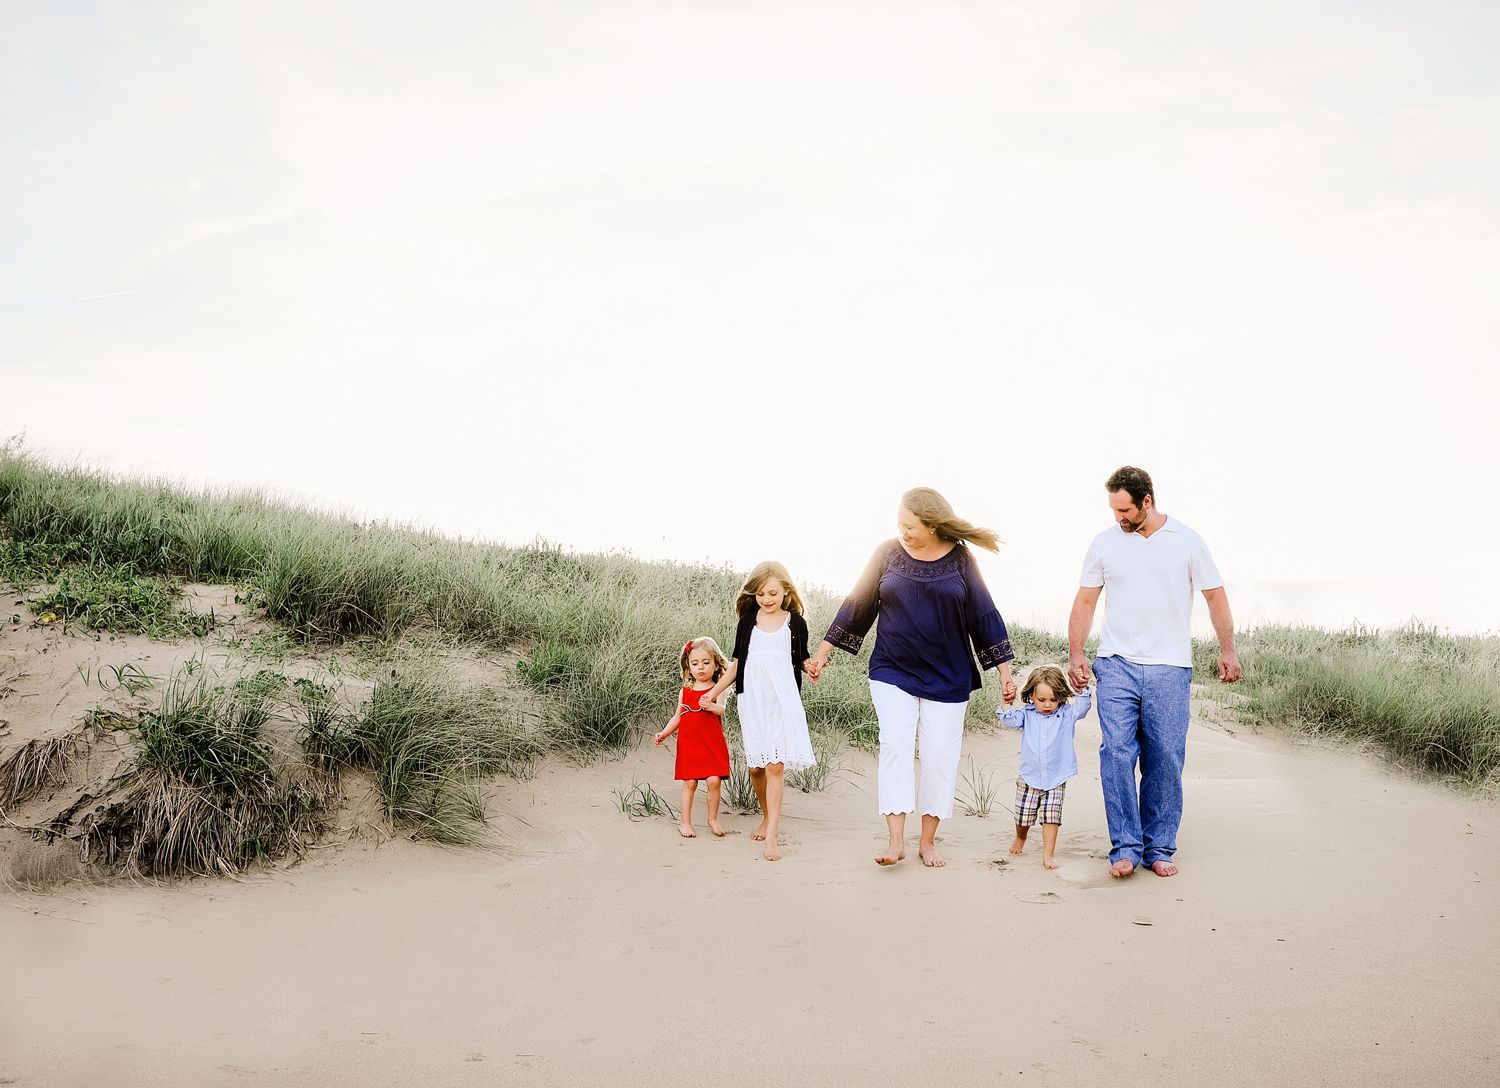 sandbridge-beach-family-photo-shoot-at-little-island-park-virginia-beach.jpg